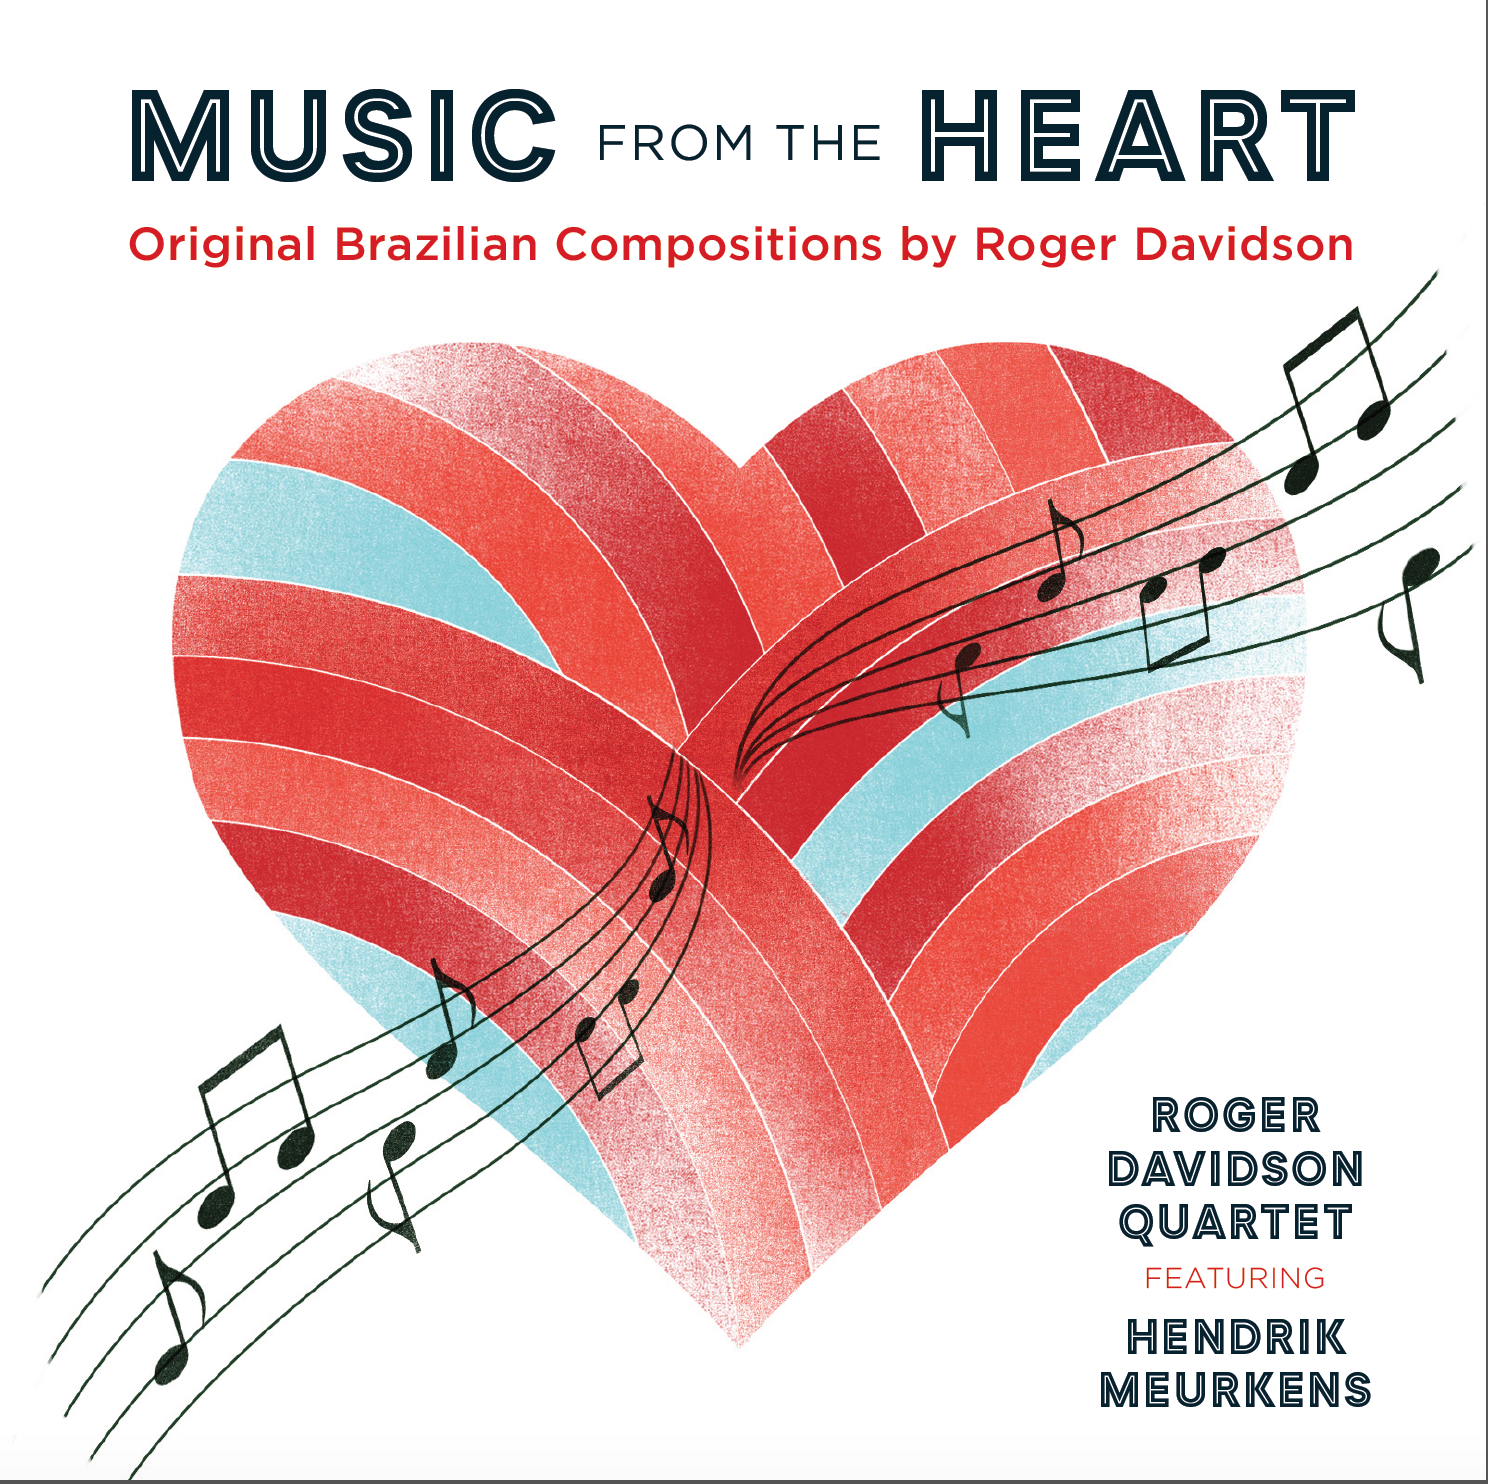 Music From The Heart - As a pianist, composer, and a fearless explorer of worldwide musical landscapes, Roger Davidson is uncategorizable, yet distinctive. He's an endless font of melody and positive spirit; and whether the music is classical, Latin, Brazilian, klezmer, sacred, or jazz, he finds the common threads.Music from the Heartis his second album with Hendrik Meurkens, arguably the premier living master of jazz harmonica and a celebrated vibraphonist as well. This set of original Brazilian-flavored songs is in large part a love letter by Roger to his wife Nilcelia. Joined by two of Brazil's finest musicians, drummer Adriano Santos and bassist Eduardo Belo, Roger and Hendrik take an exuberant ride through some of Roger's latest music, including a jazz samba (My Love Is Only You); a romantic, French-flavored bossa nova (Celia); a playfulchorinho(O Mico)that evokes a Brazilian monkey; andSamba de Alegria, a rollicking party for the whole quartet.Music from the Heartis an album that was created to lift spirits and instill hope.